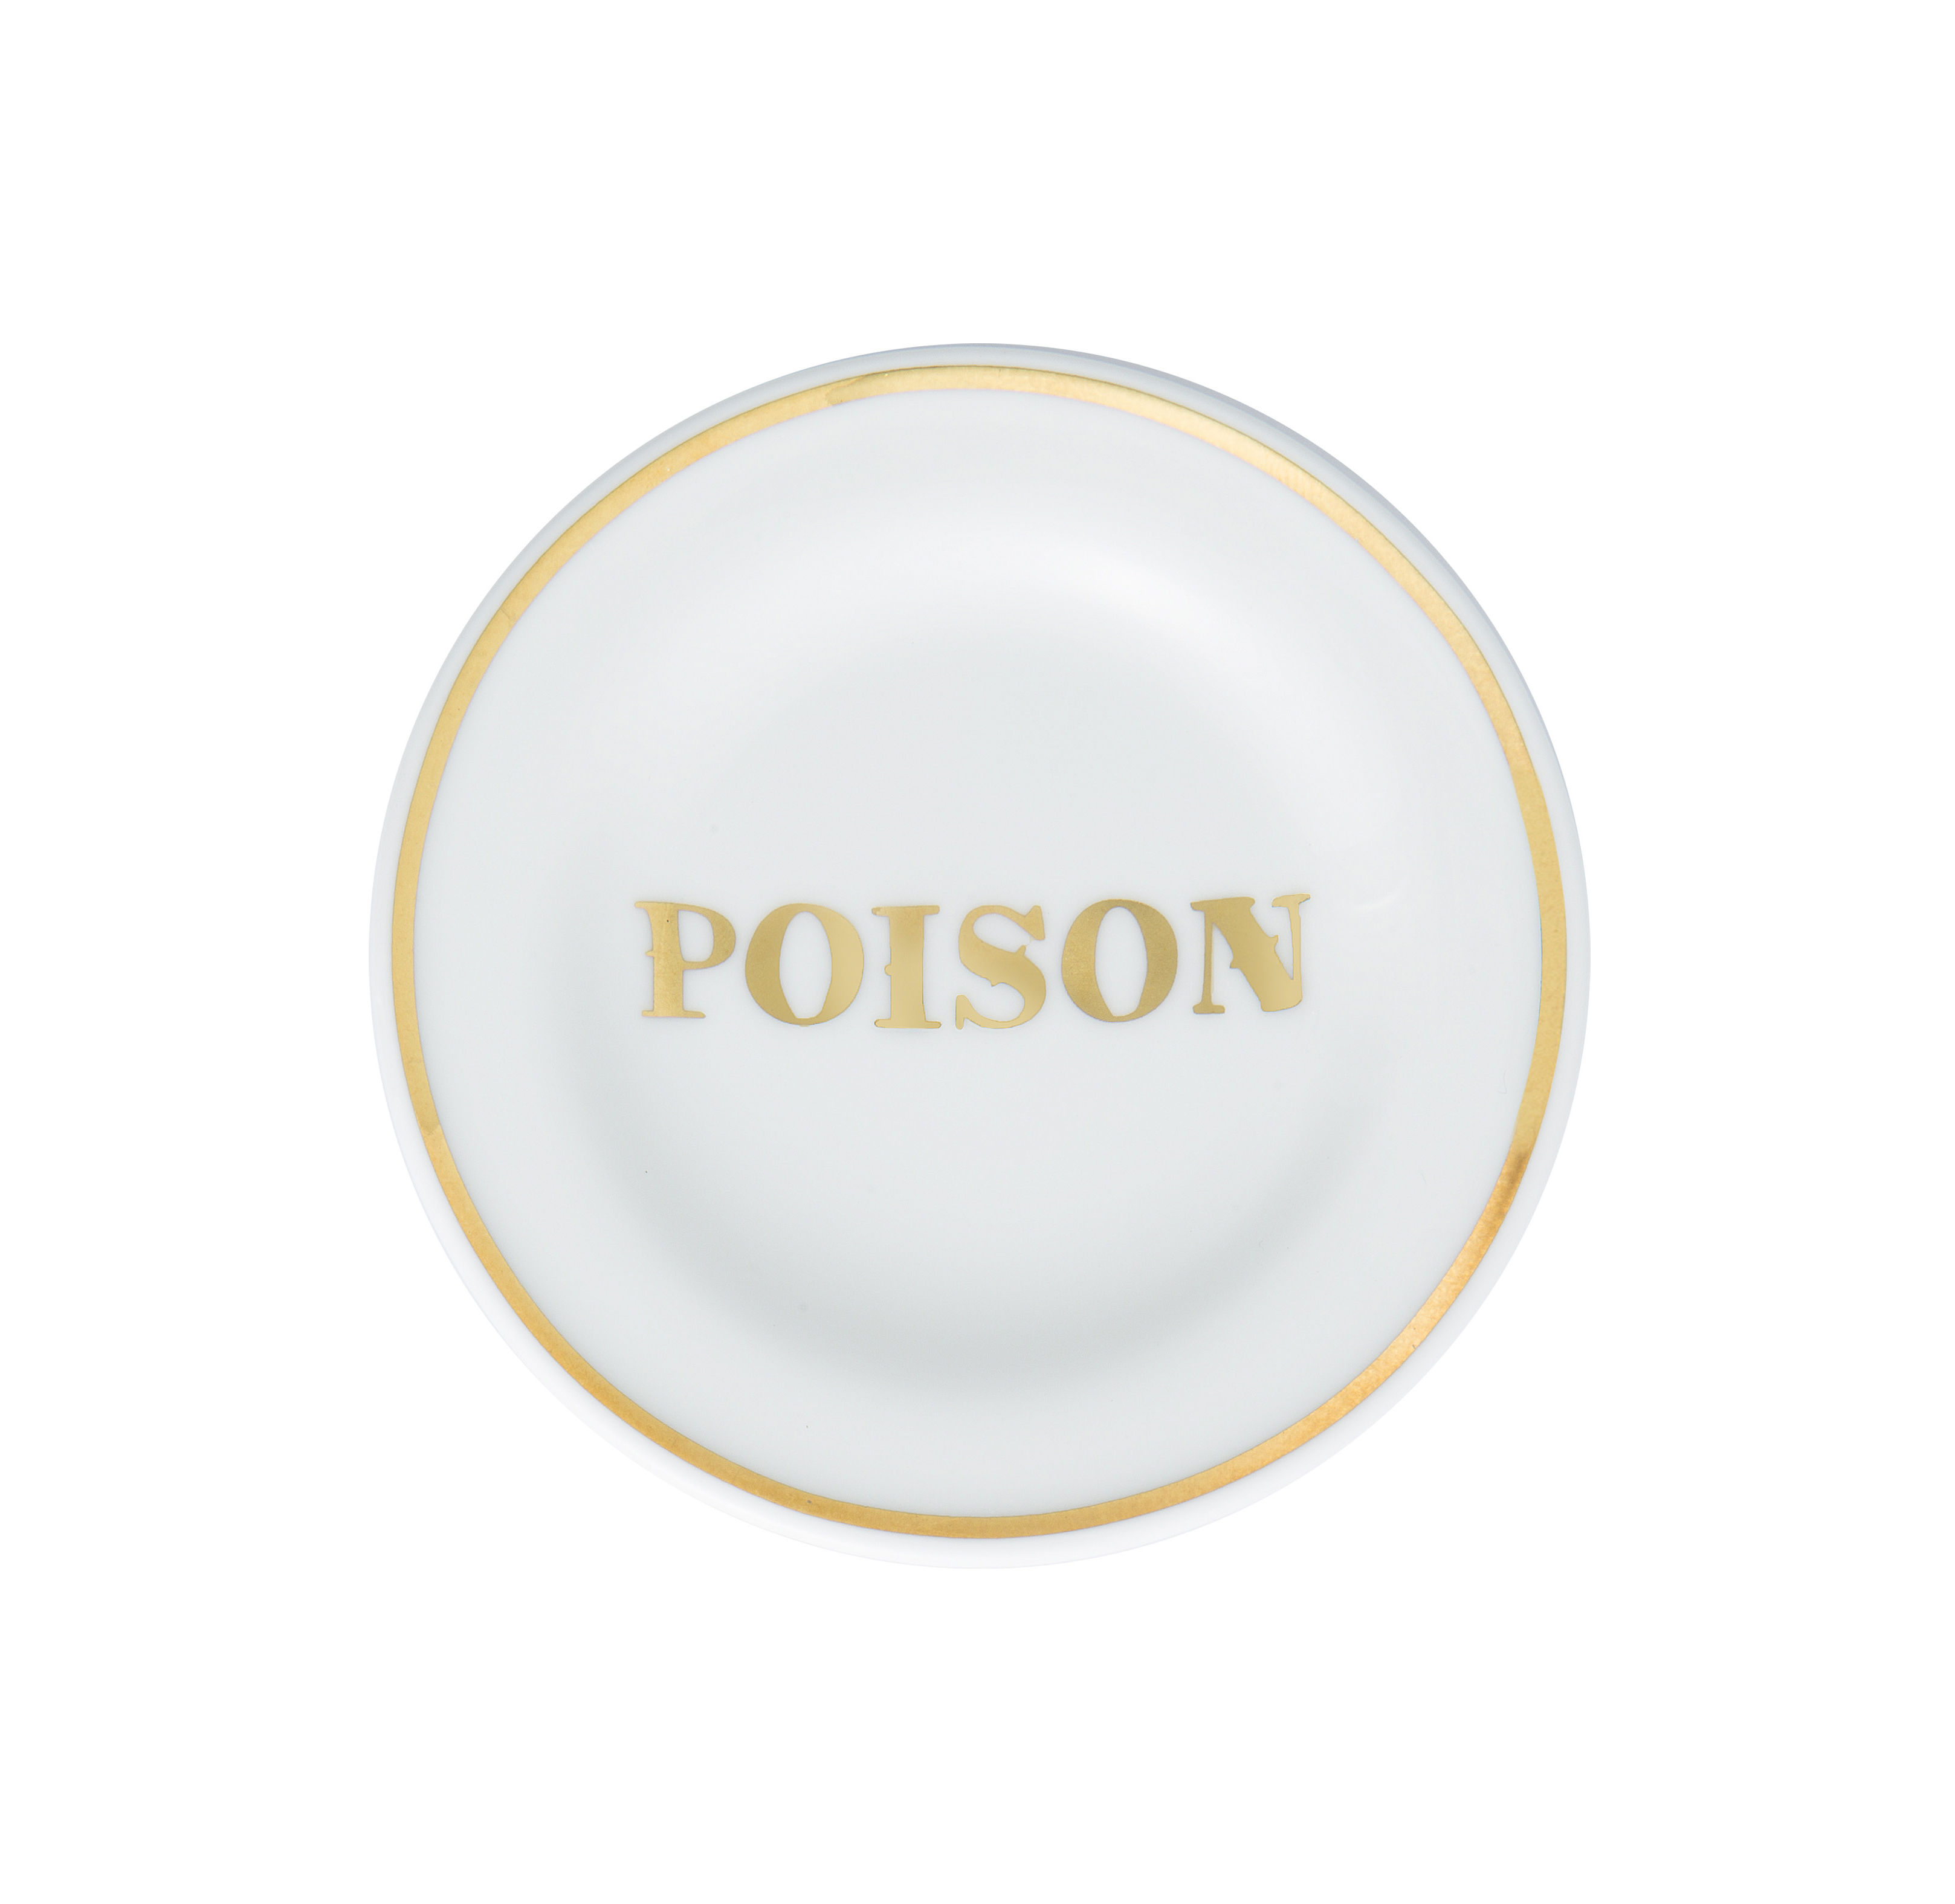 Tableware - Plates - Poison Small dish - / Ø 9.5 cm by Bitossi Home - Poison - China